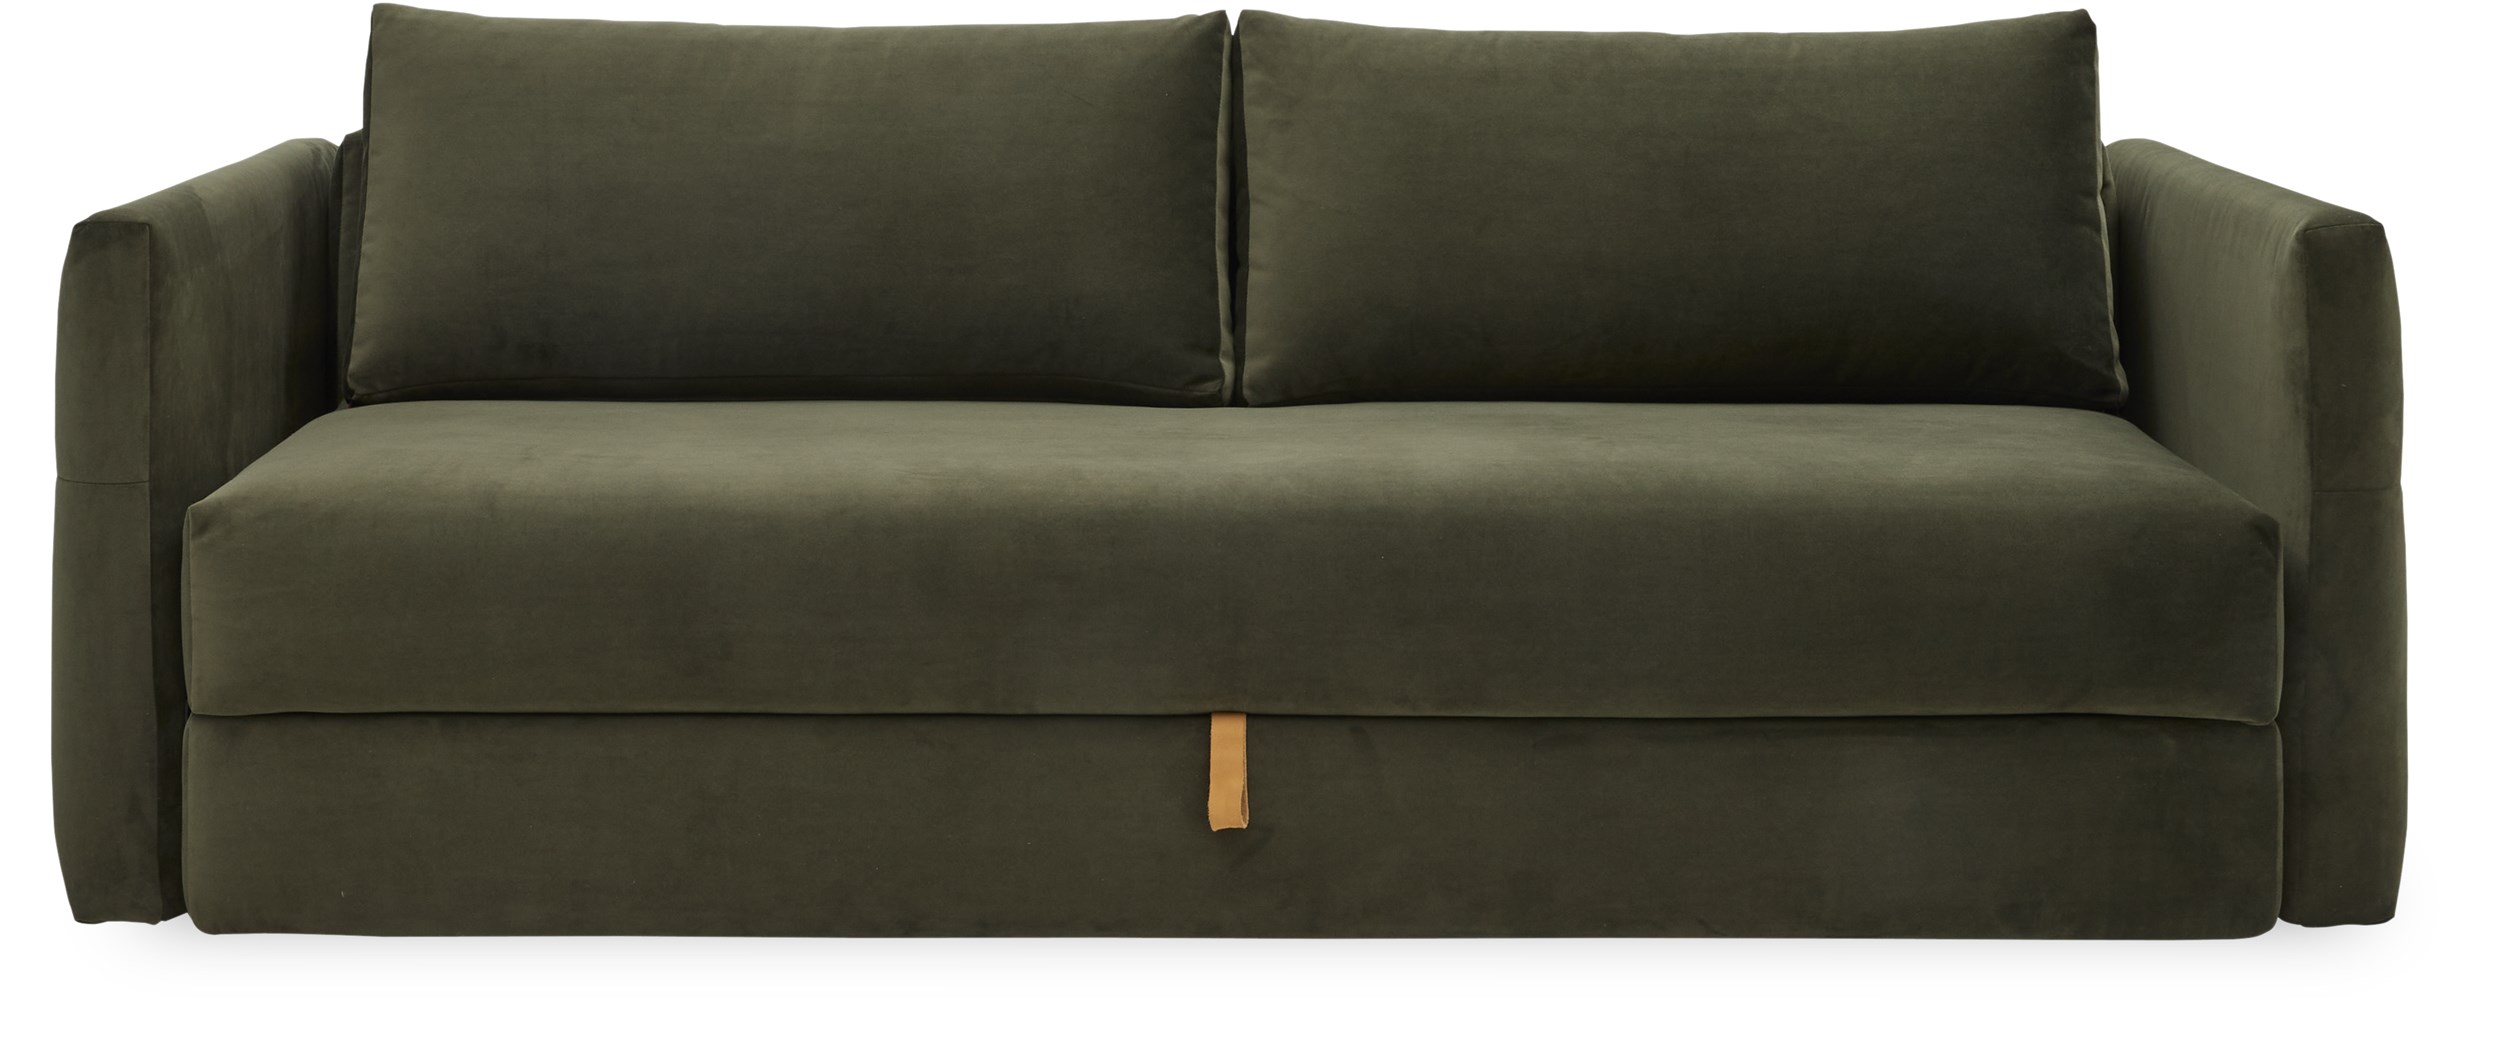 Innovation Living - Mannus Sovesofa - Velvet 547 Army, pocketspring/hypersoft skummadras og magasin med læderstrop